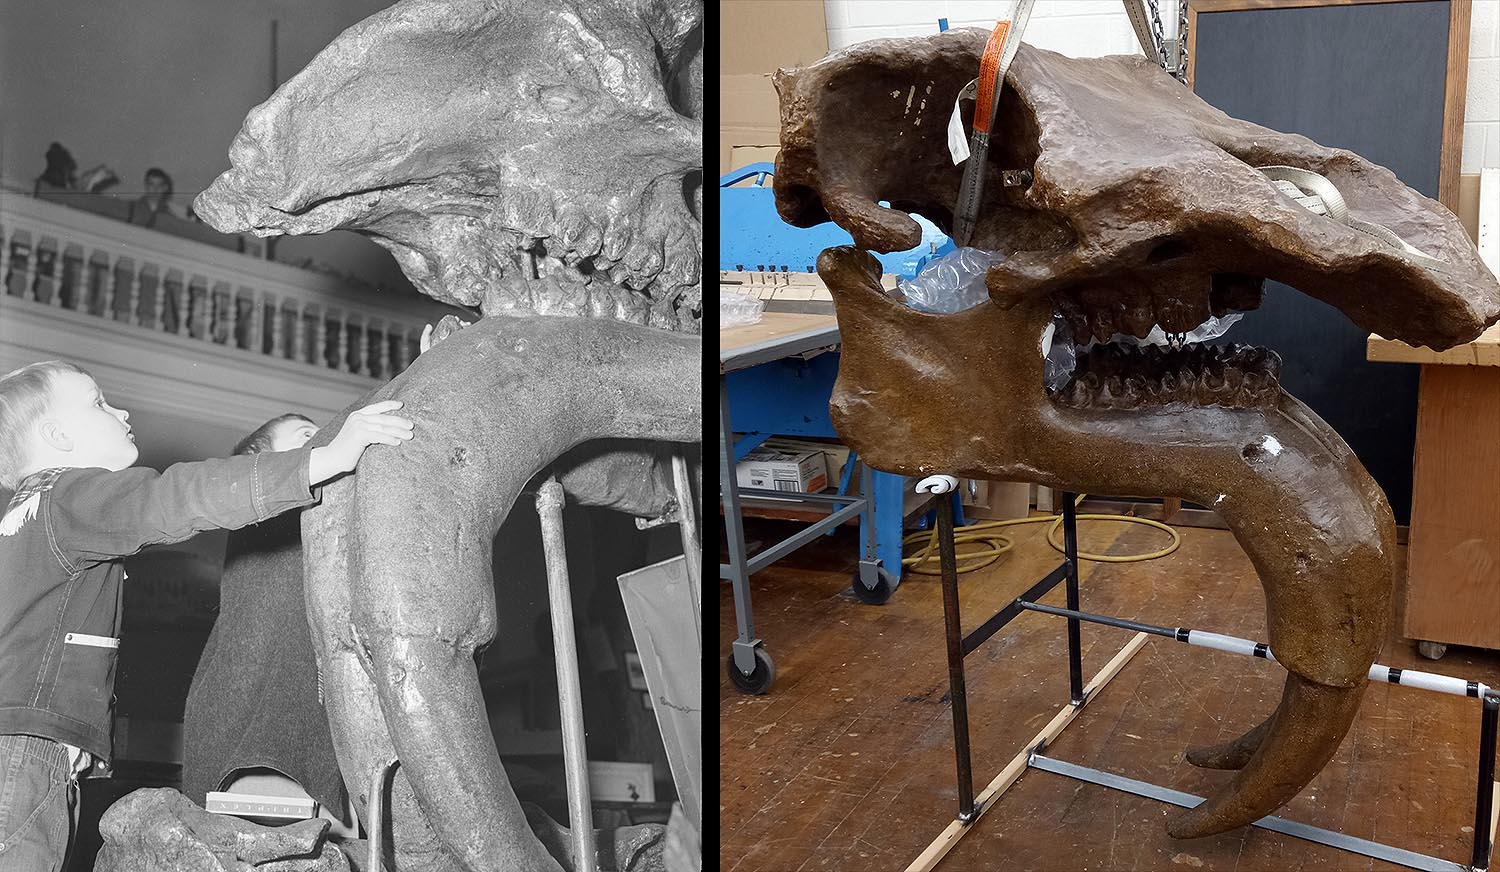 Another planned exhibit is that of the huge skull of a Deinotherium, an extinct elephant-relative with its tusks growing from the lower jaw. The Deinotherium, which was once on display in the Wesleyan Museum, is currently housed in Wesleyan's Machine Shop. It will soon be installed in a hallway in Exley.